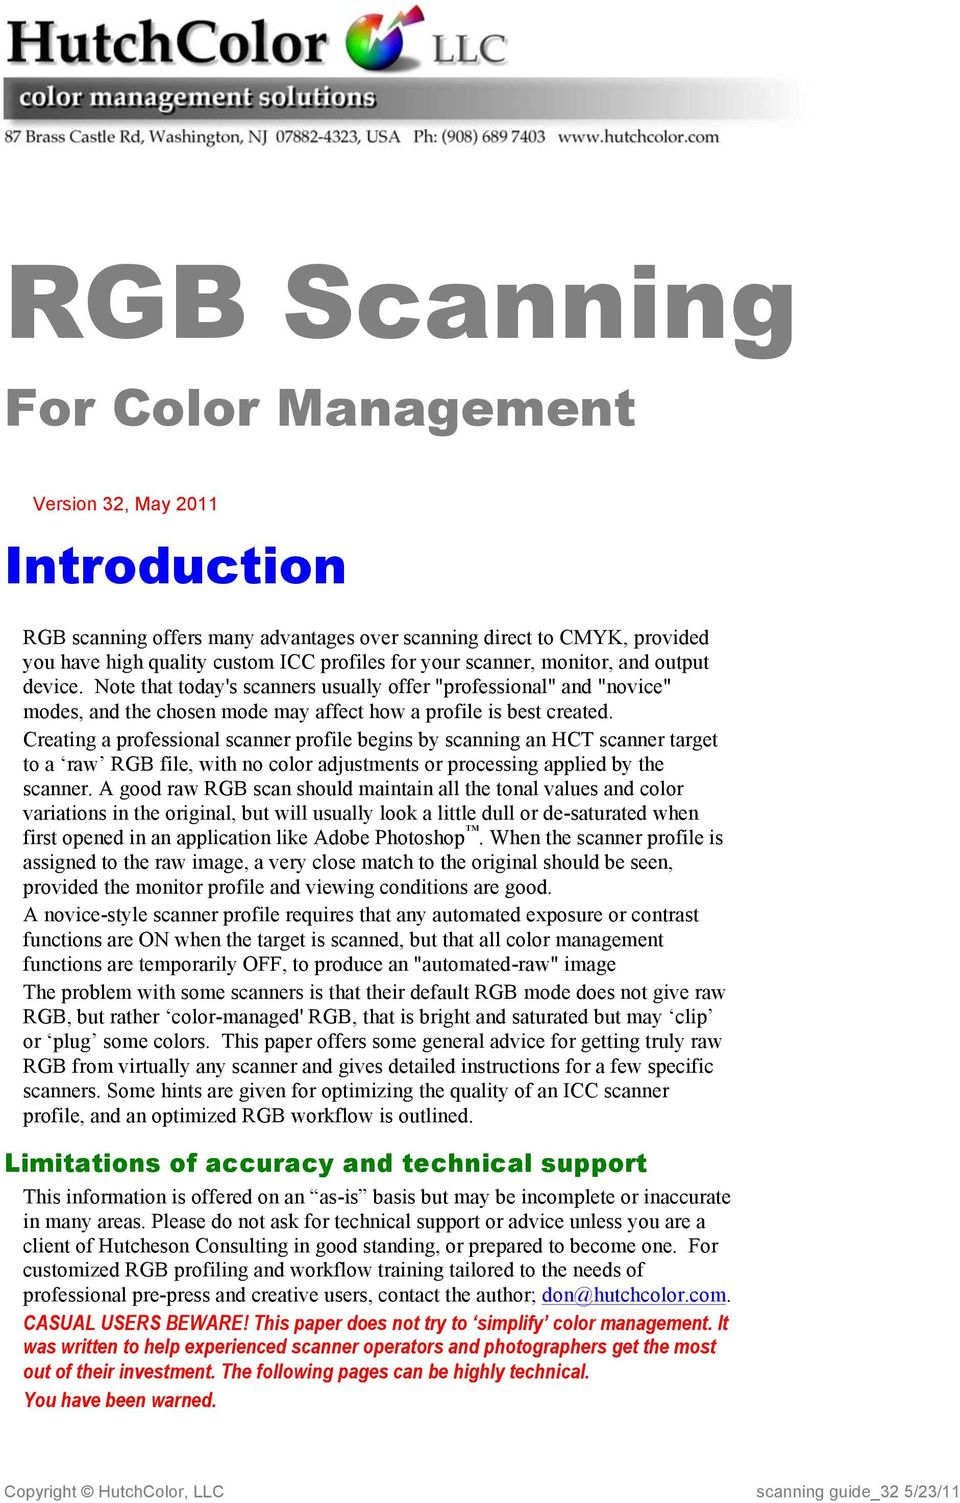 Creating a professional scanner profile begins by scanning an HCT scanner target to a raw RGB file, with no color adjustments or processing applied by the scanner.